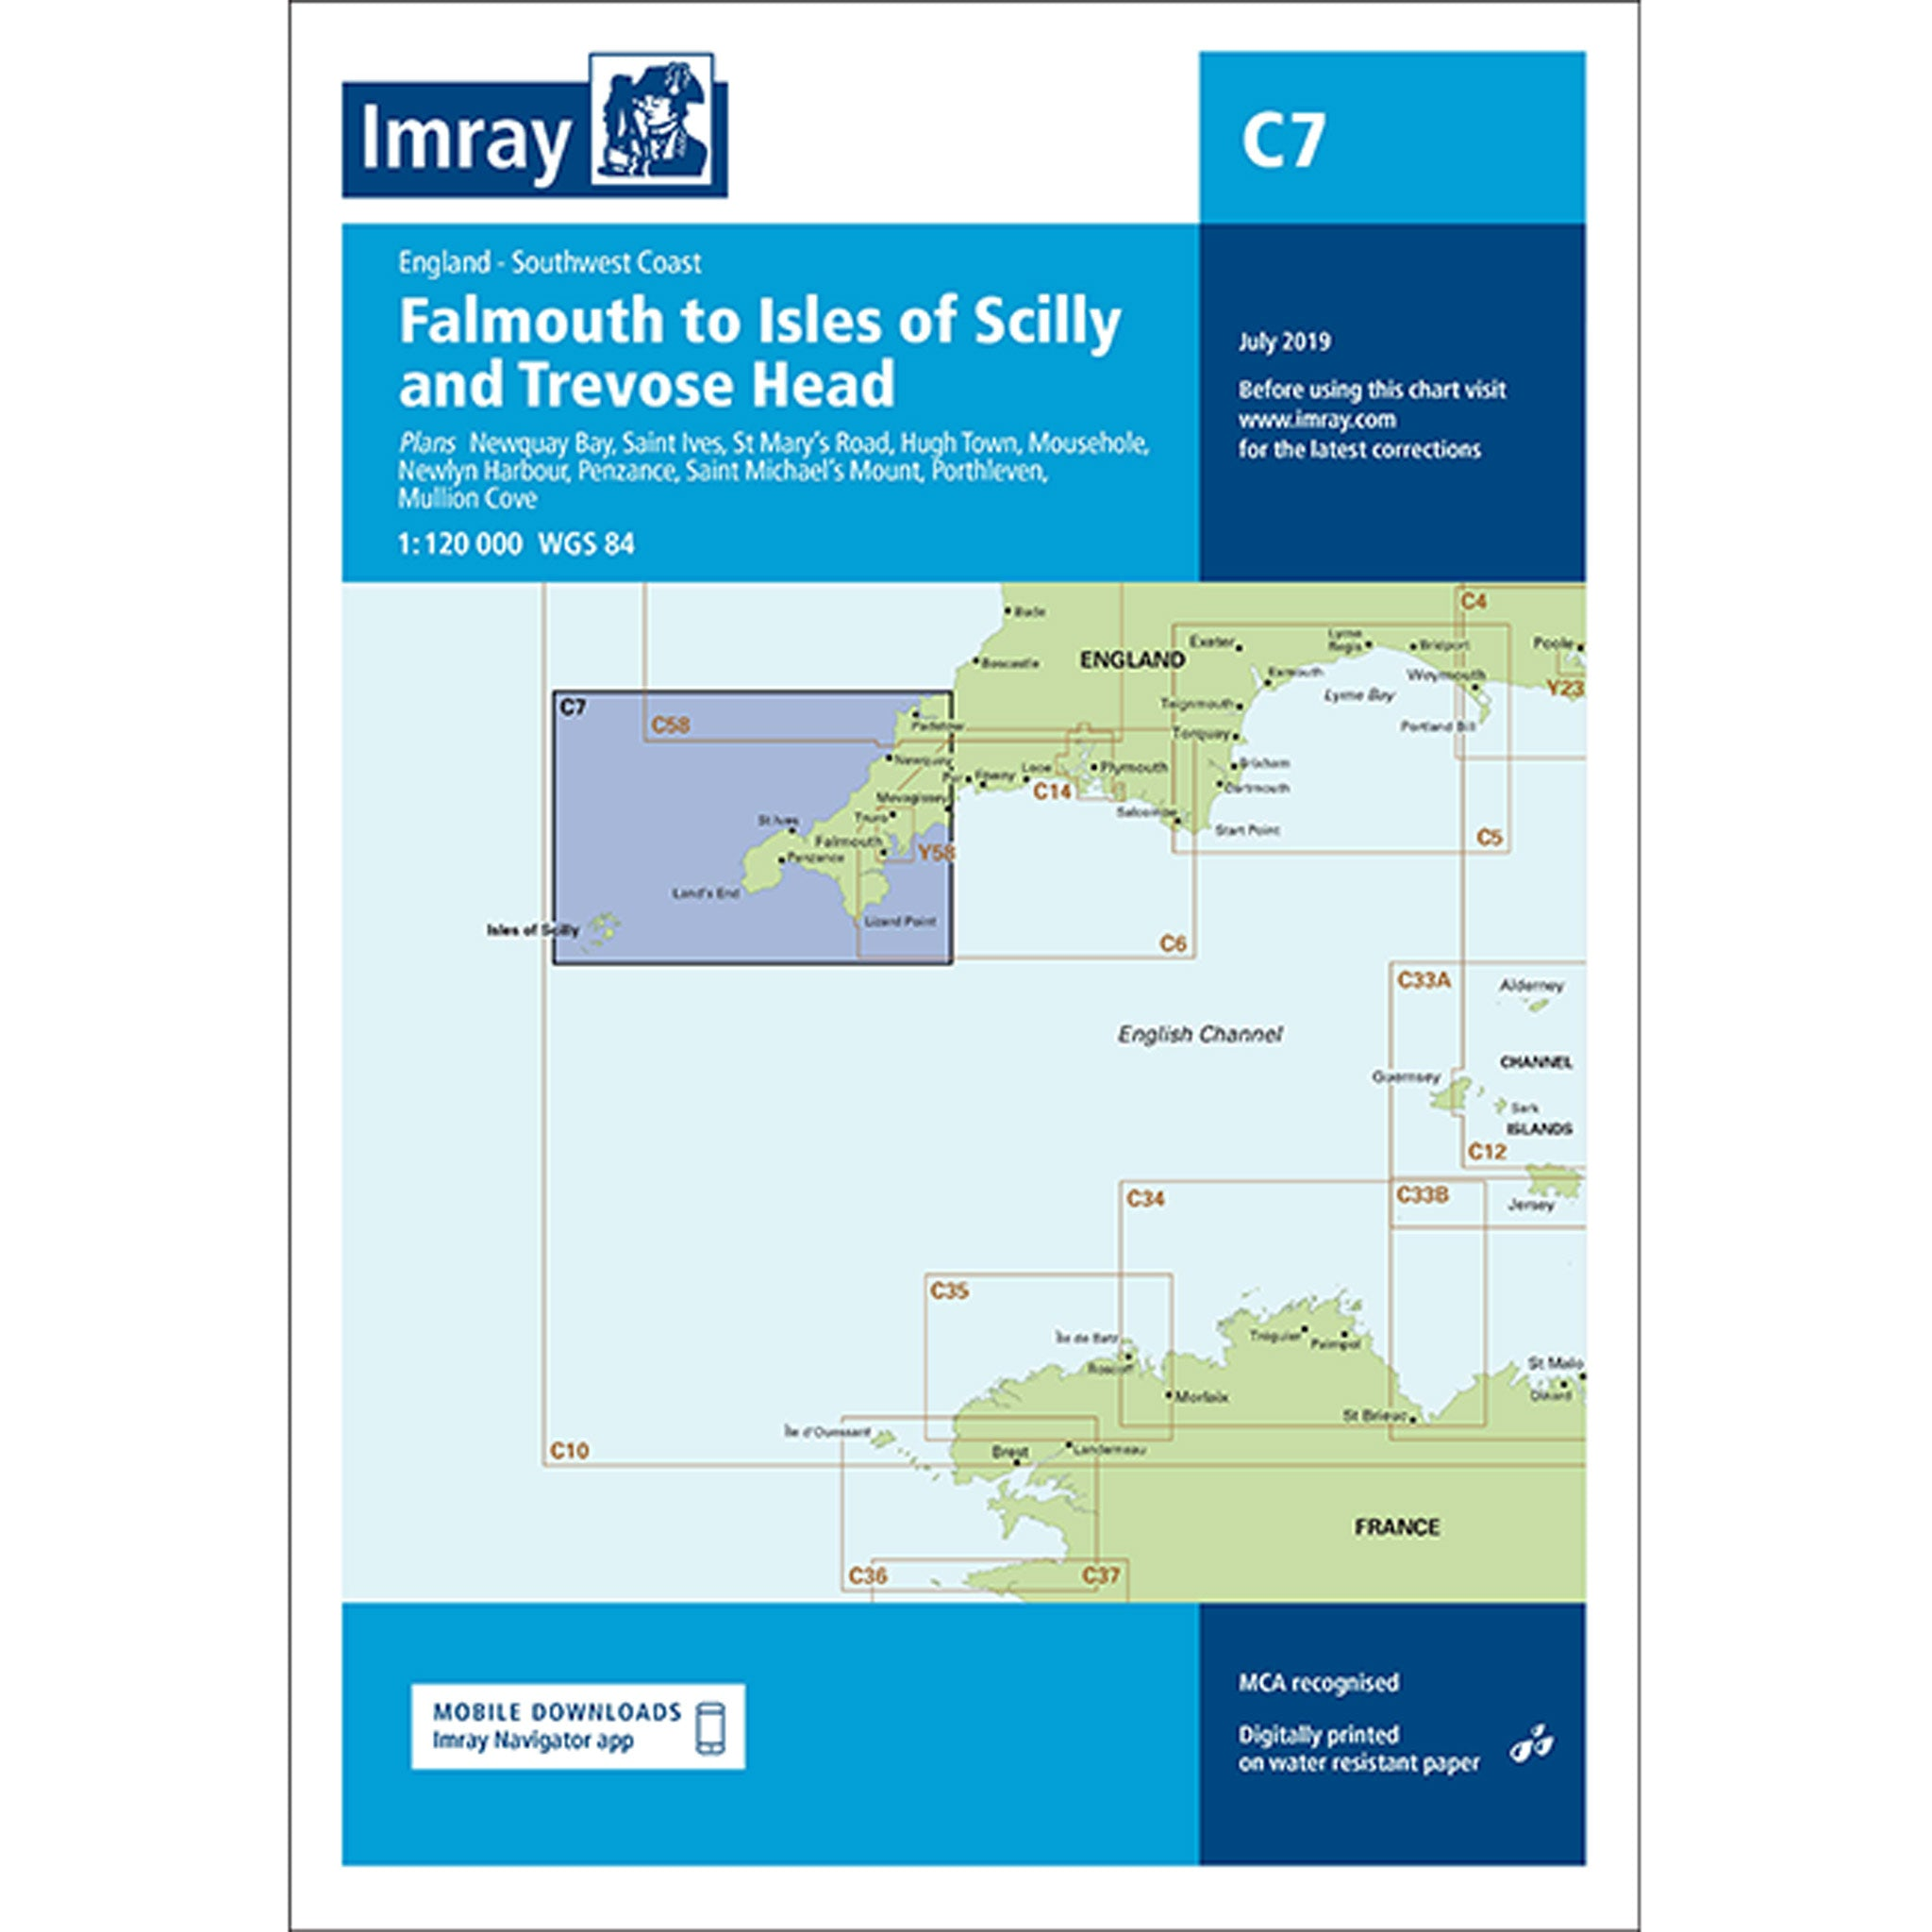 Imray Chart C7 Falmouth to Isles of Scilly and Trevose Head